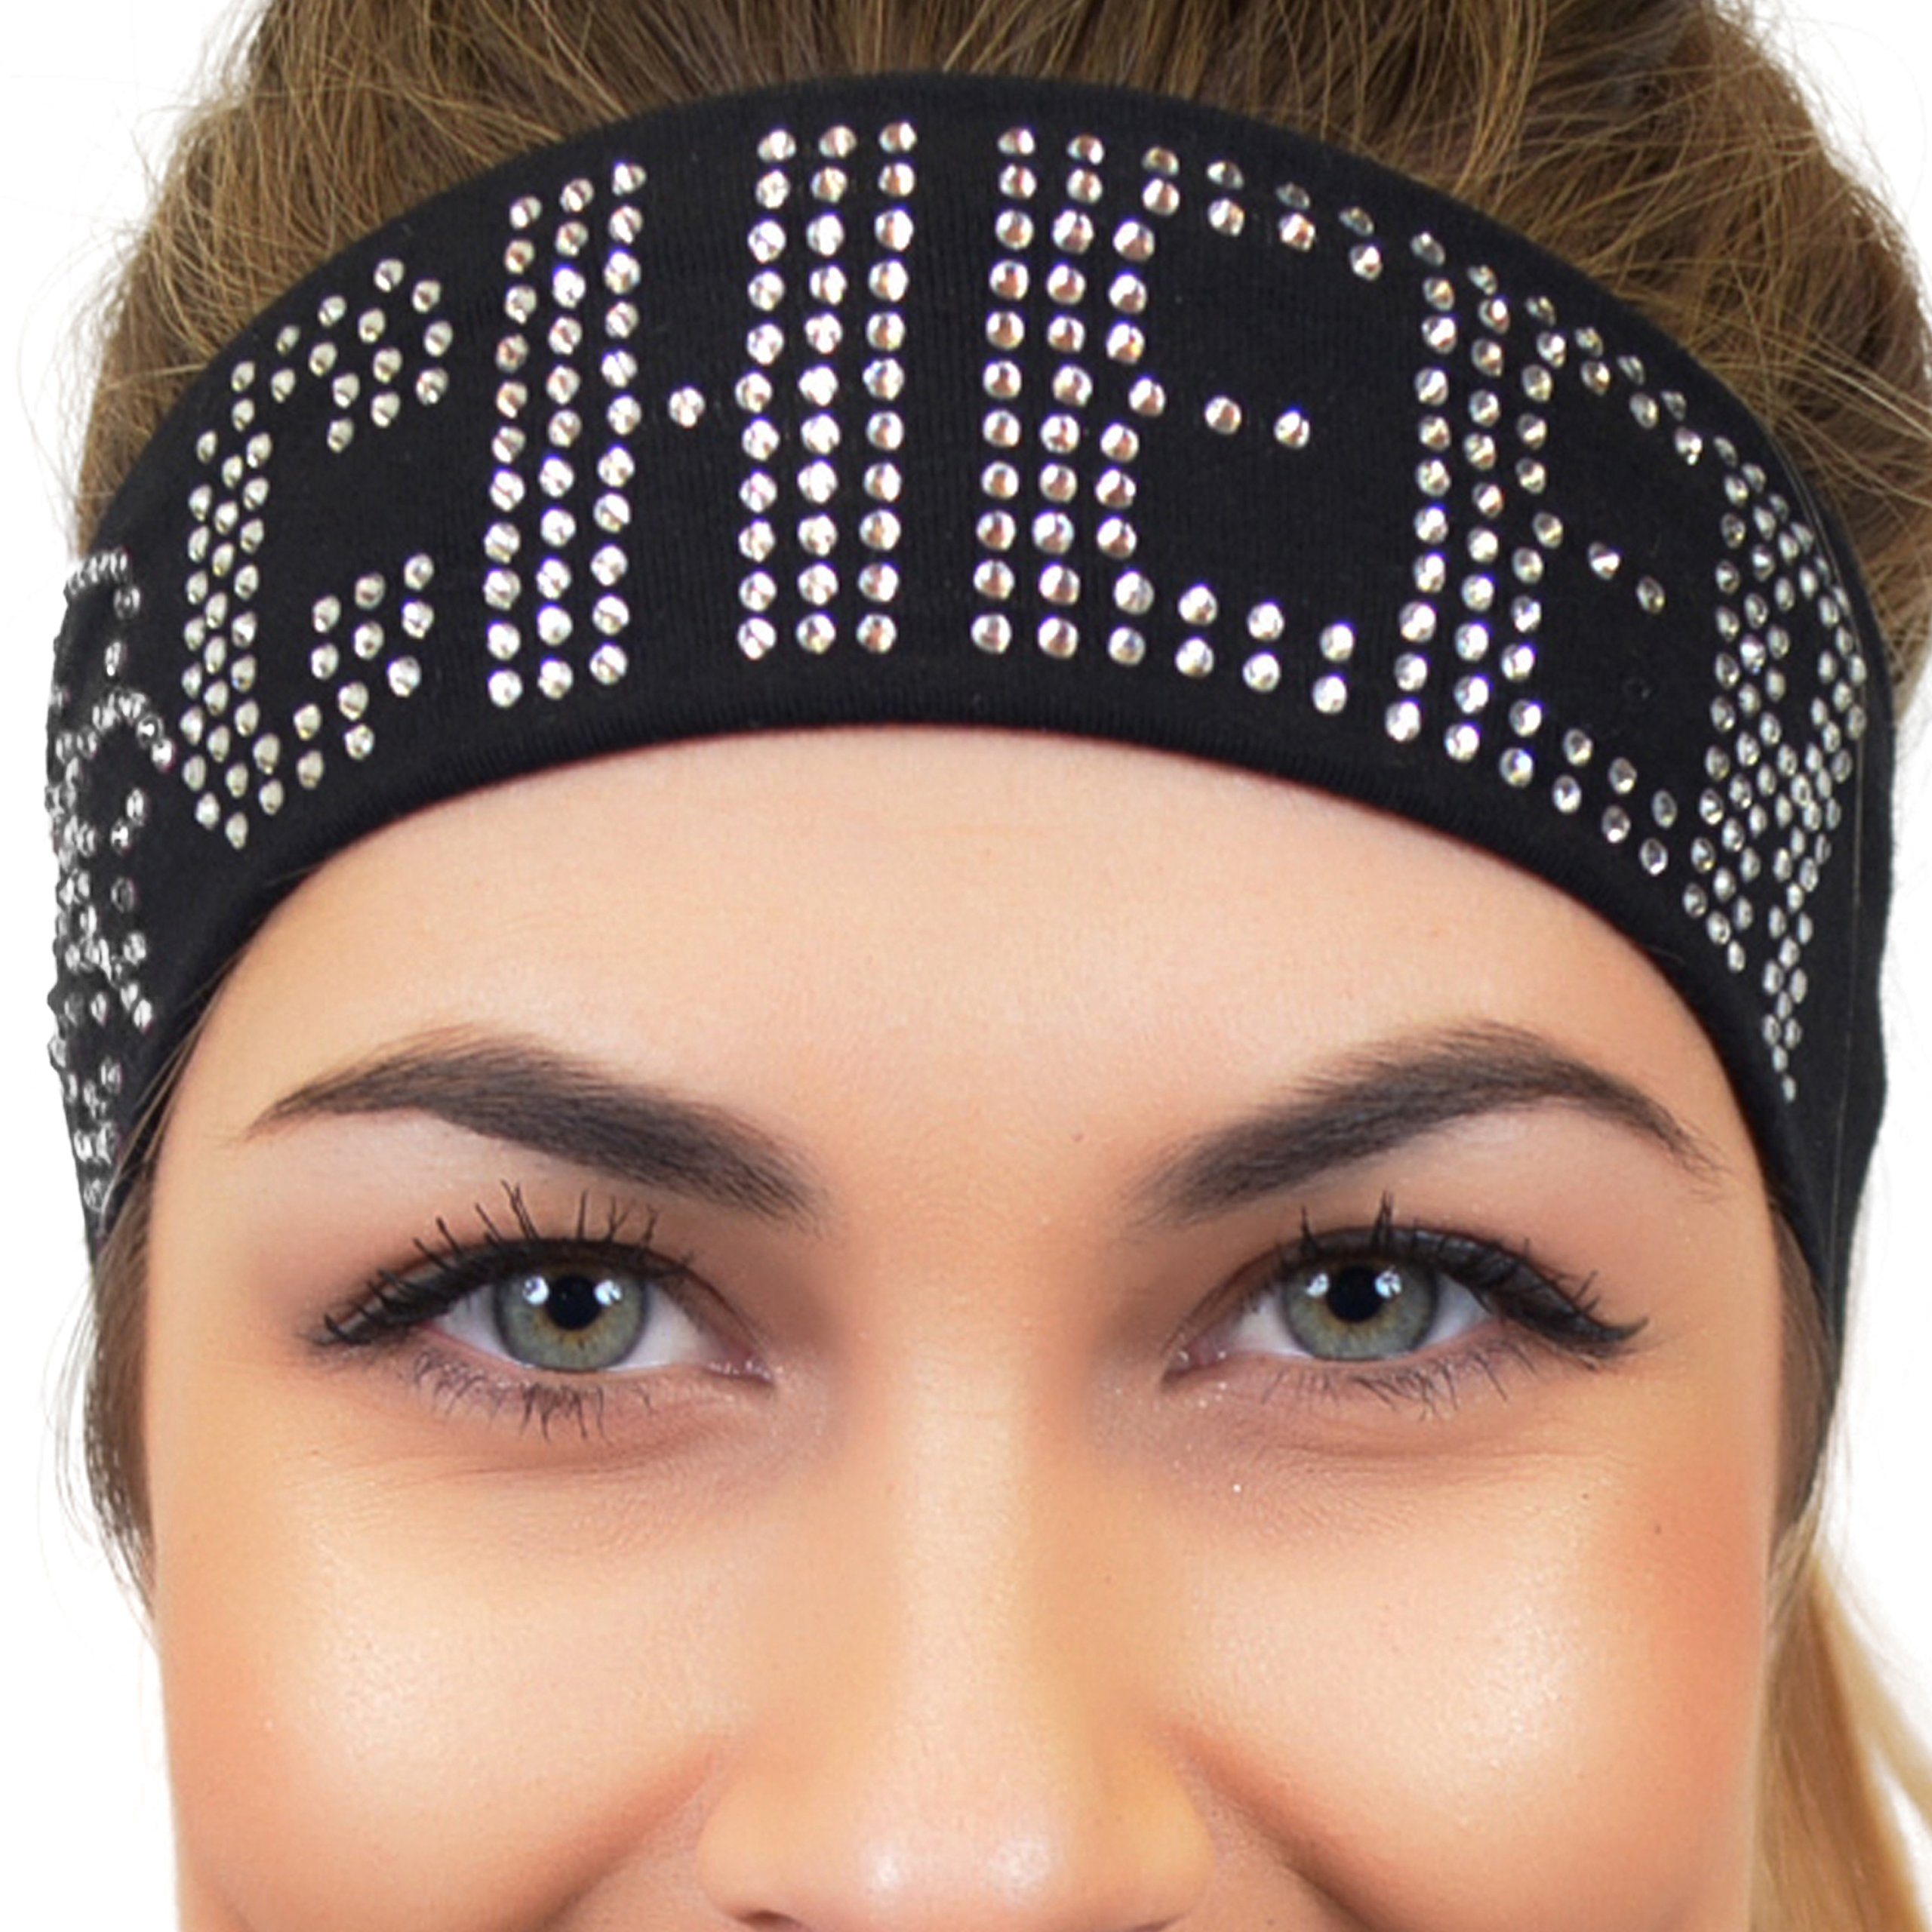 Stretch Is Comfort Girl's CHEER Rhinestone Wide Cotton Headband Black by Stretch is Comfort (Image #3)